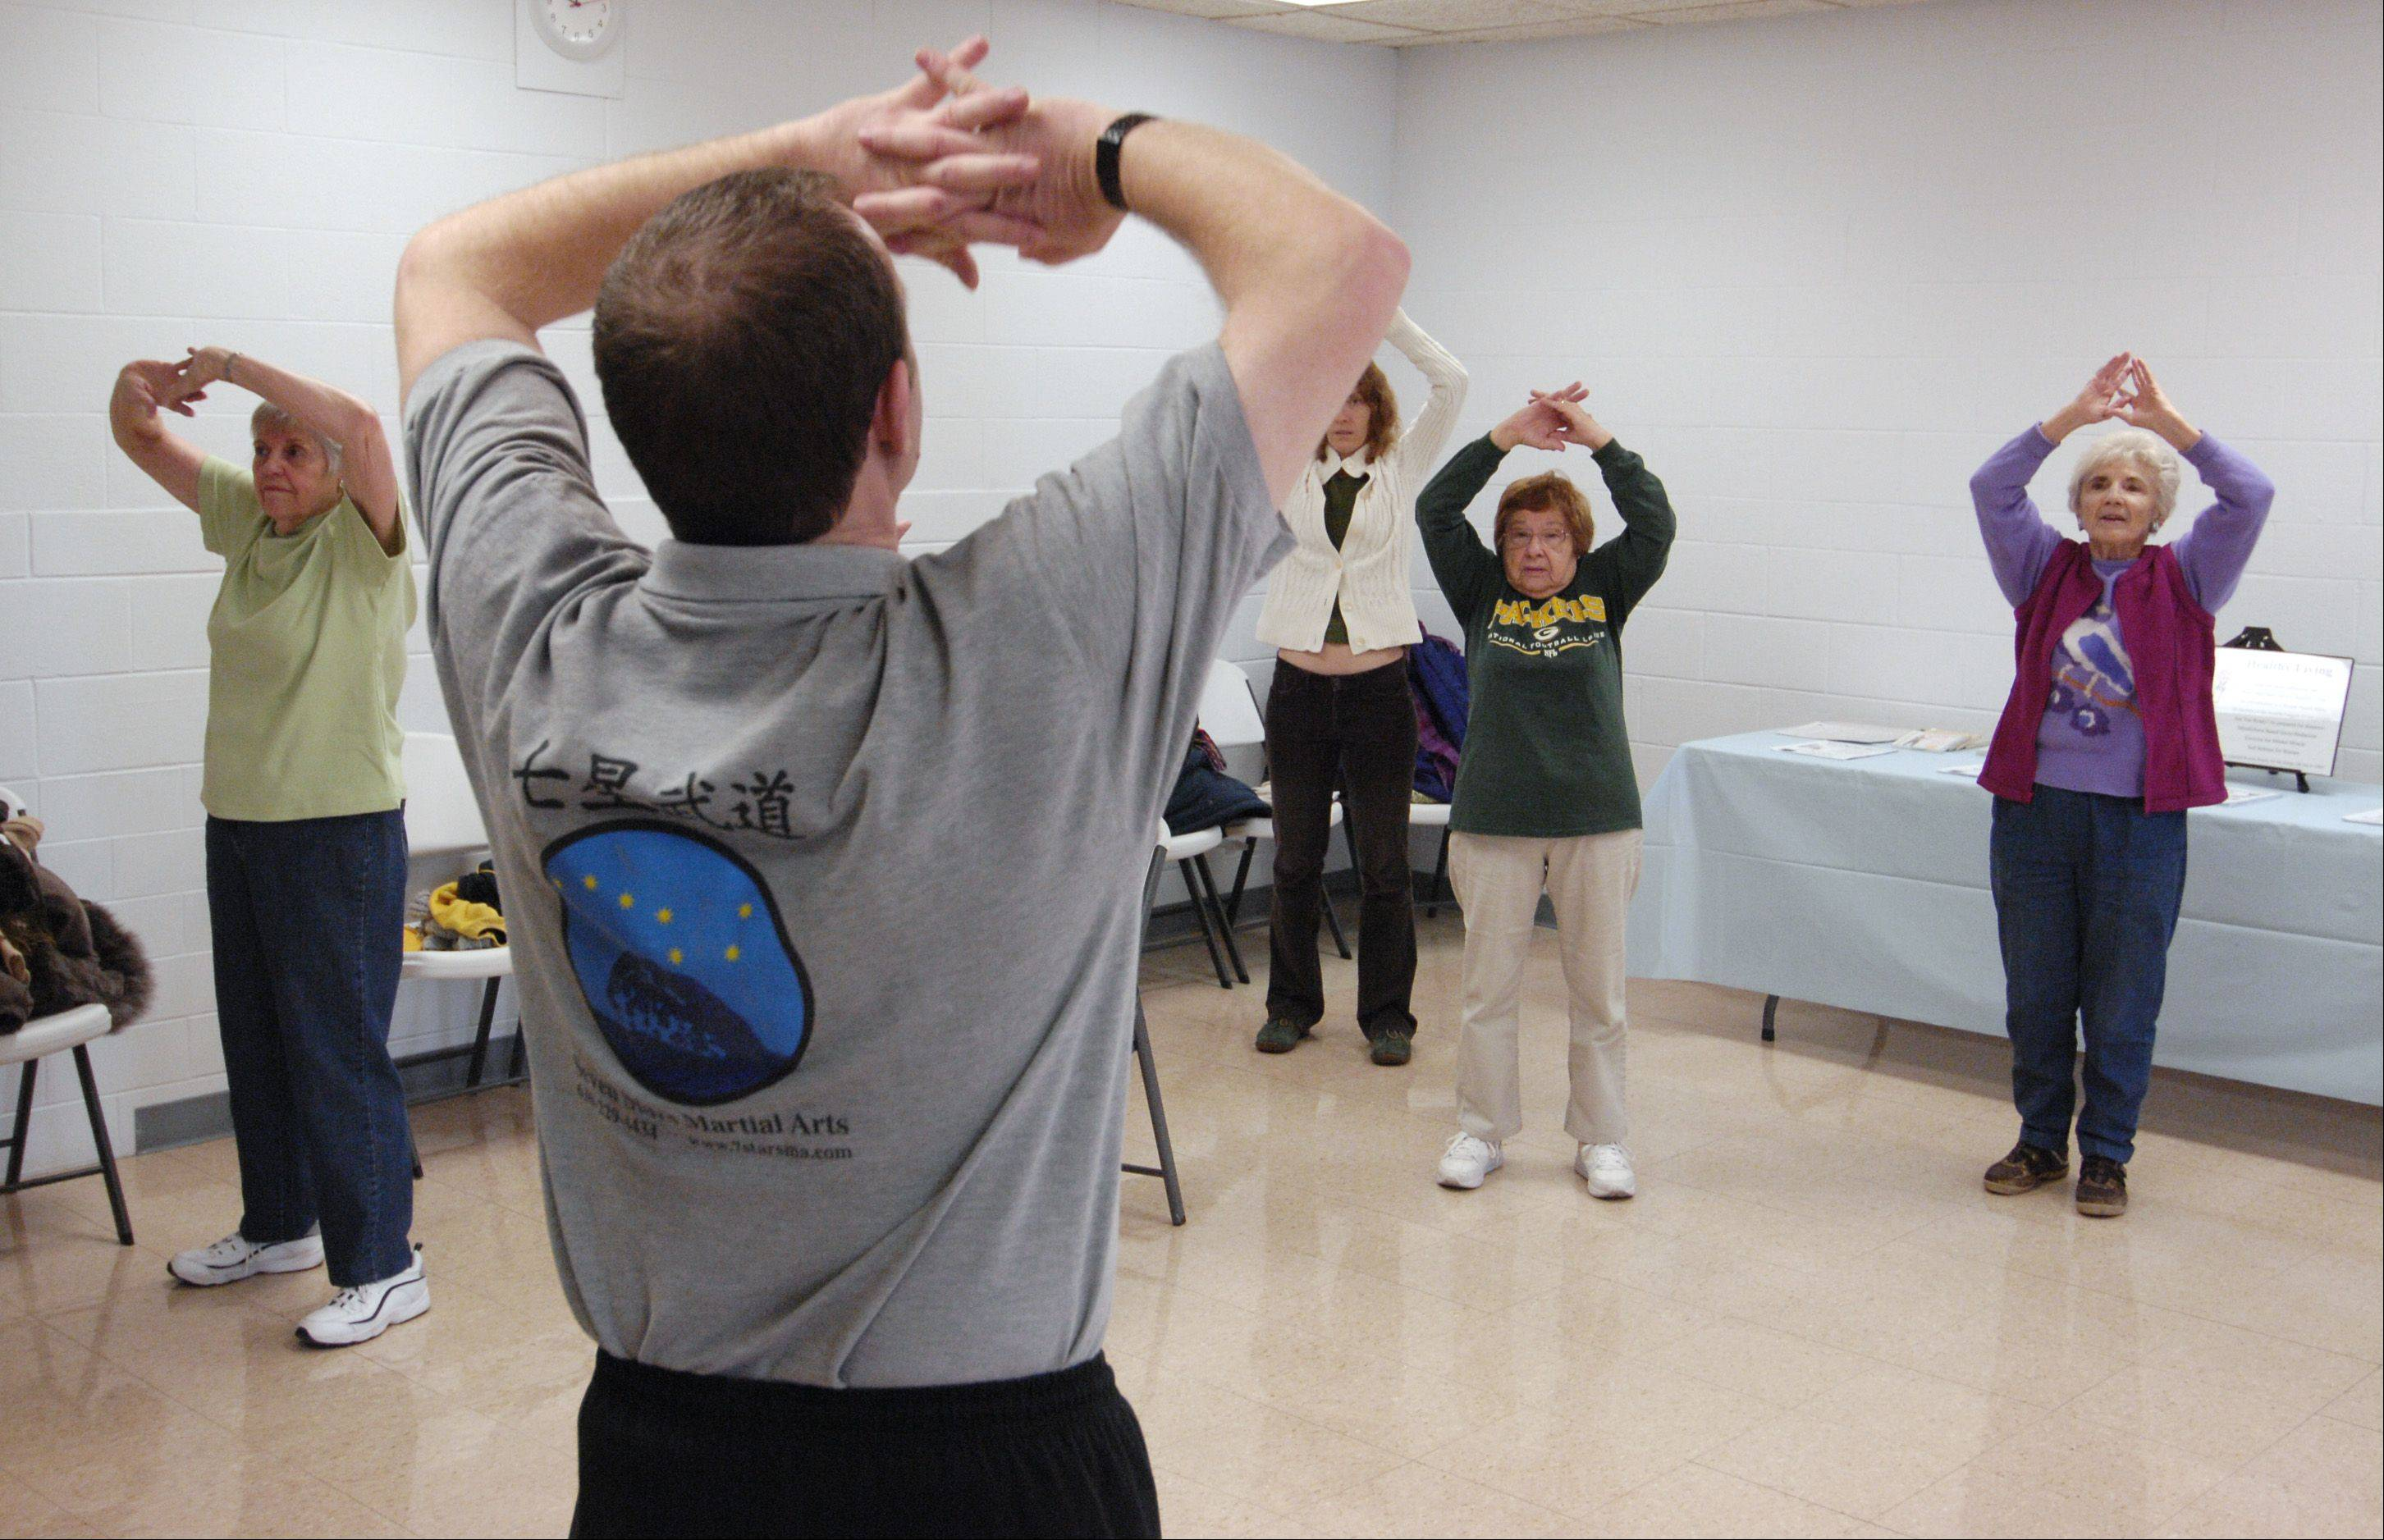 John Robertson demonstrates Tai Chi during the Lombard Park District's Health Fair and Fitness Expo Sunday at the Sunset Knoll Recreation Center.